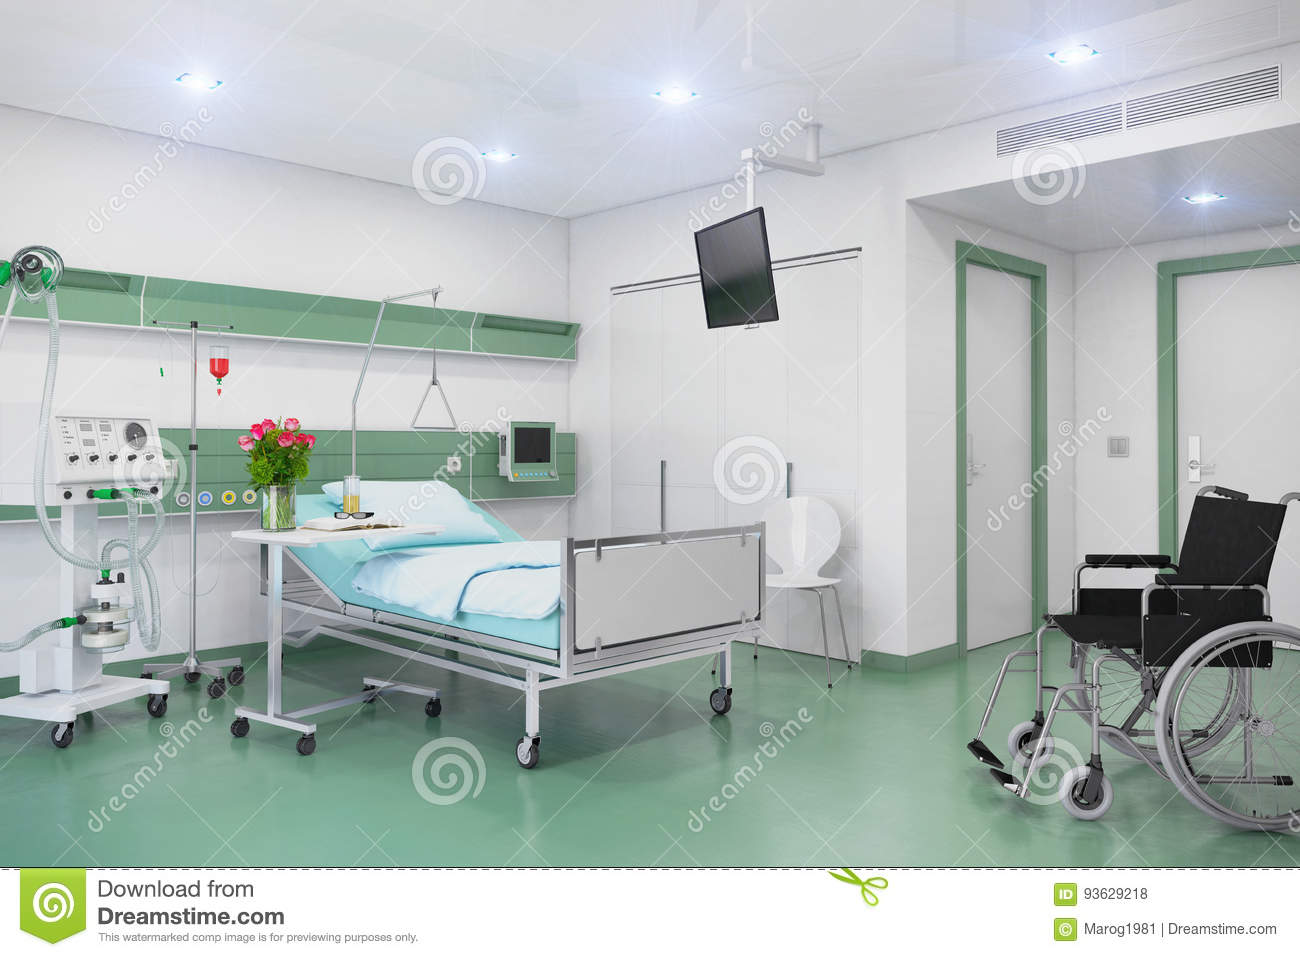 Defining and disseminating the hospital-at-home model